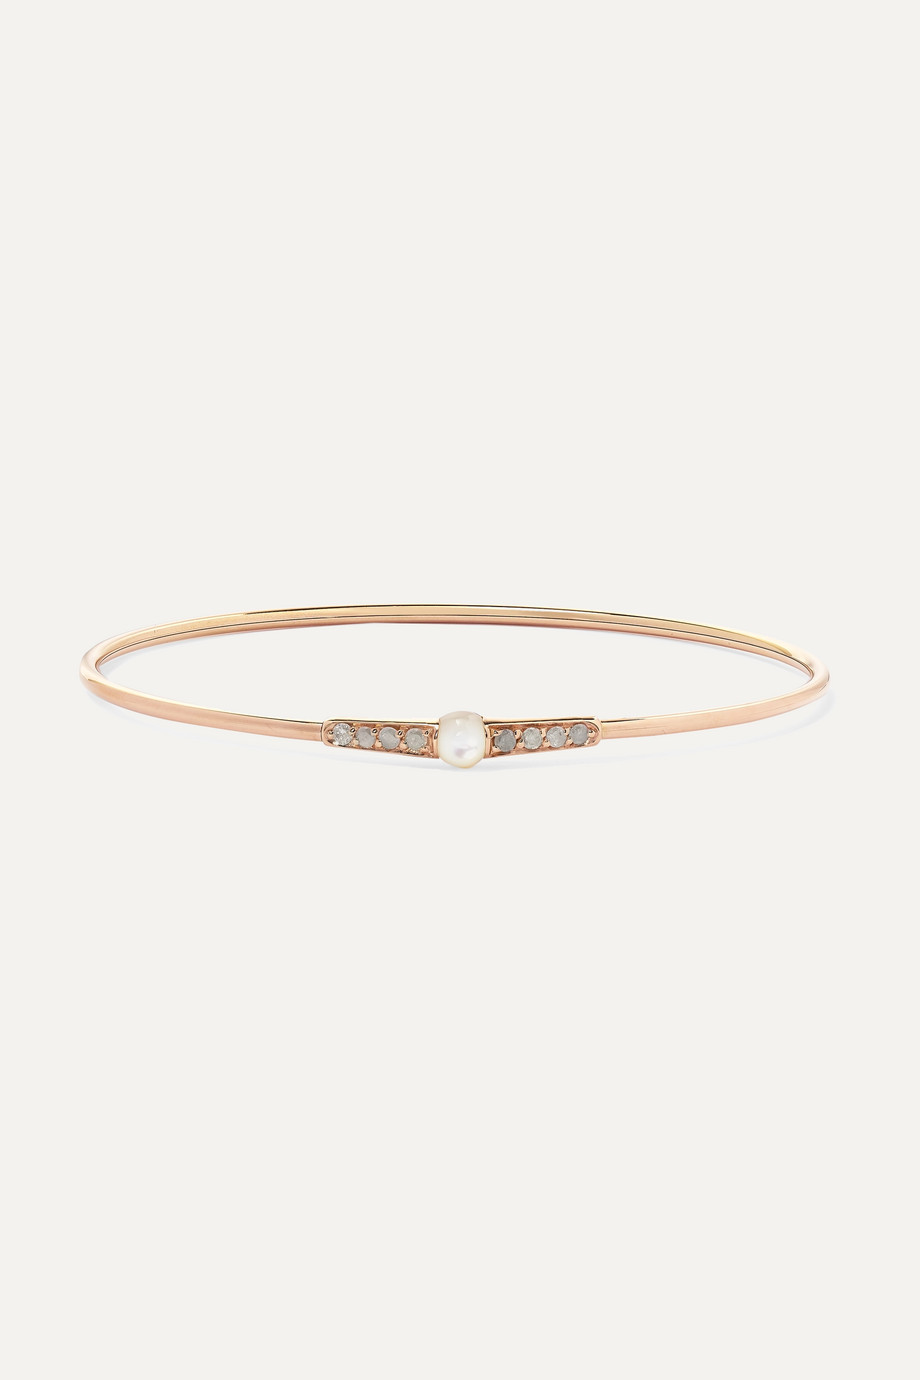 Pomellato M'ama non M'ama 18-karat rose gold, mother-of-pearl and diamond bracelet